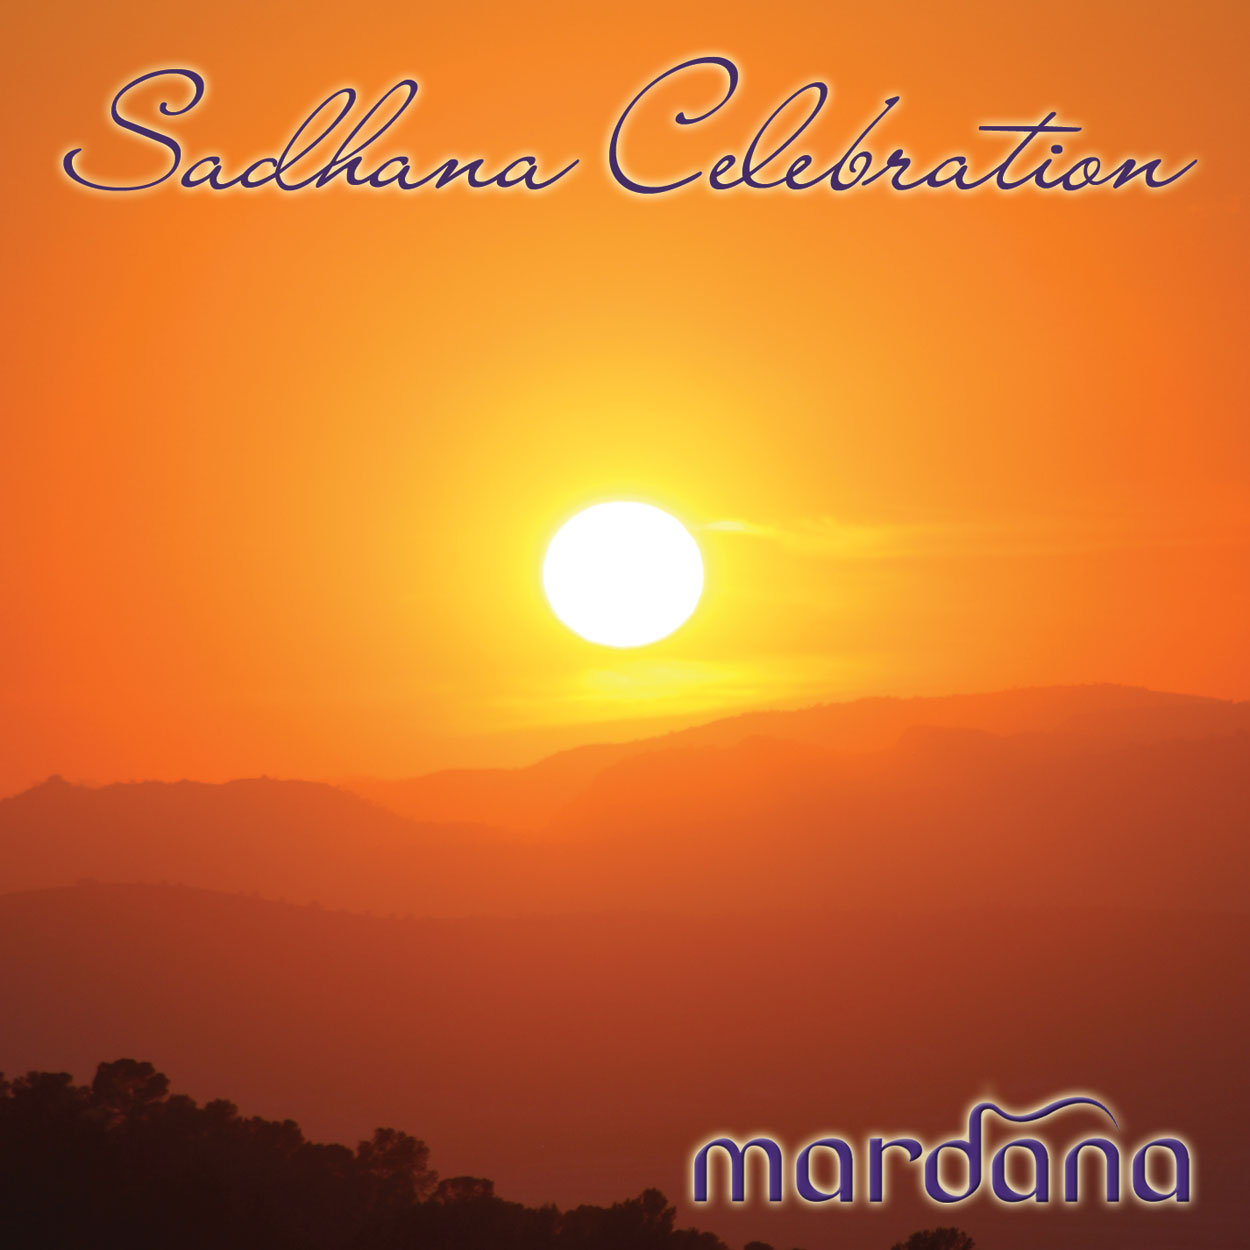 Sadhana Celebration - Mardana CD